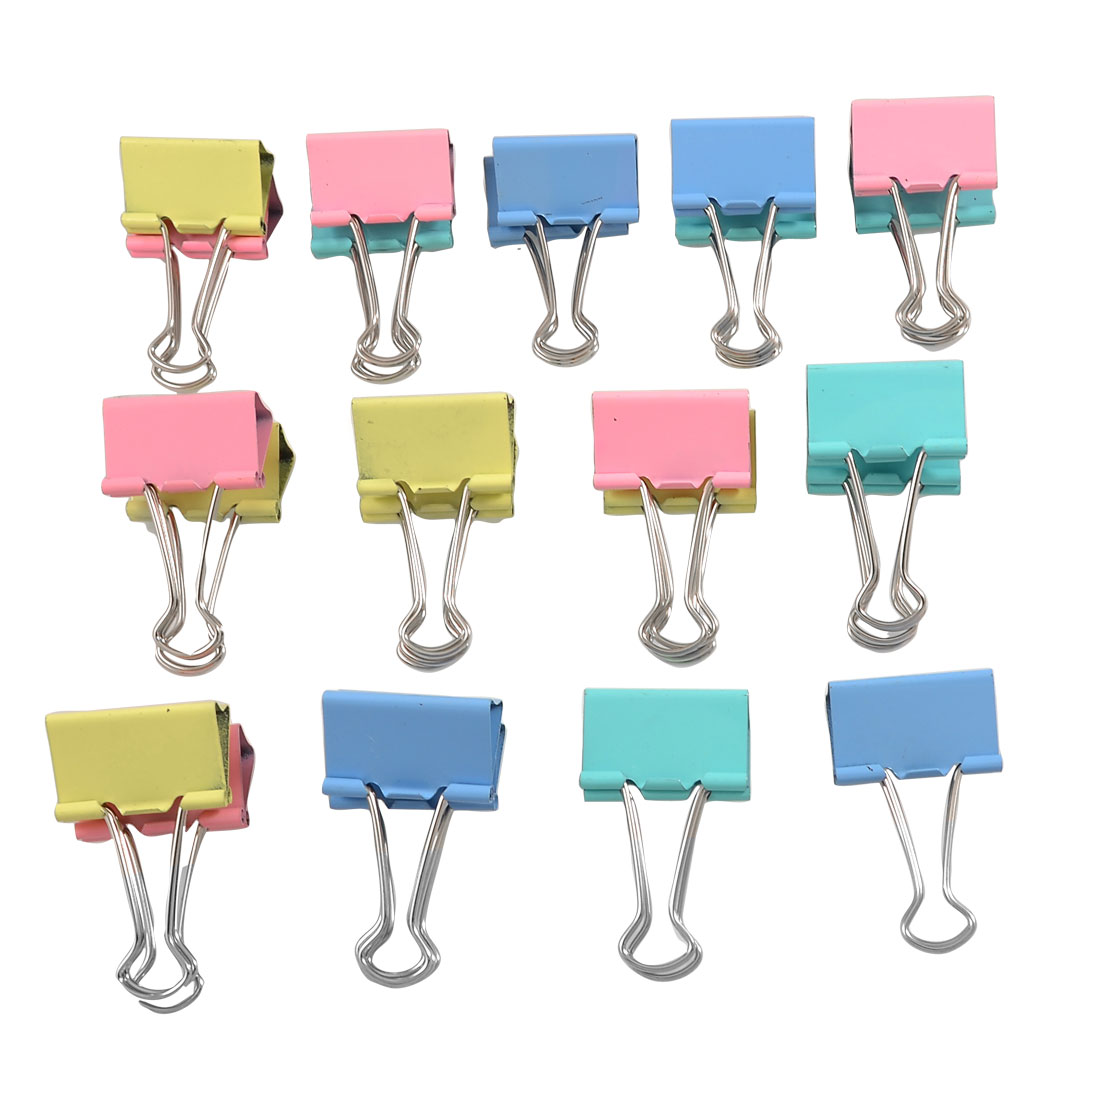 24 Pcs Assorted Color Office File Document Metal Binder Clips 31mm Width